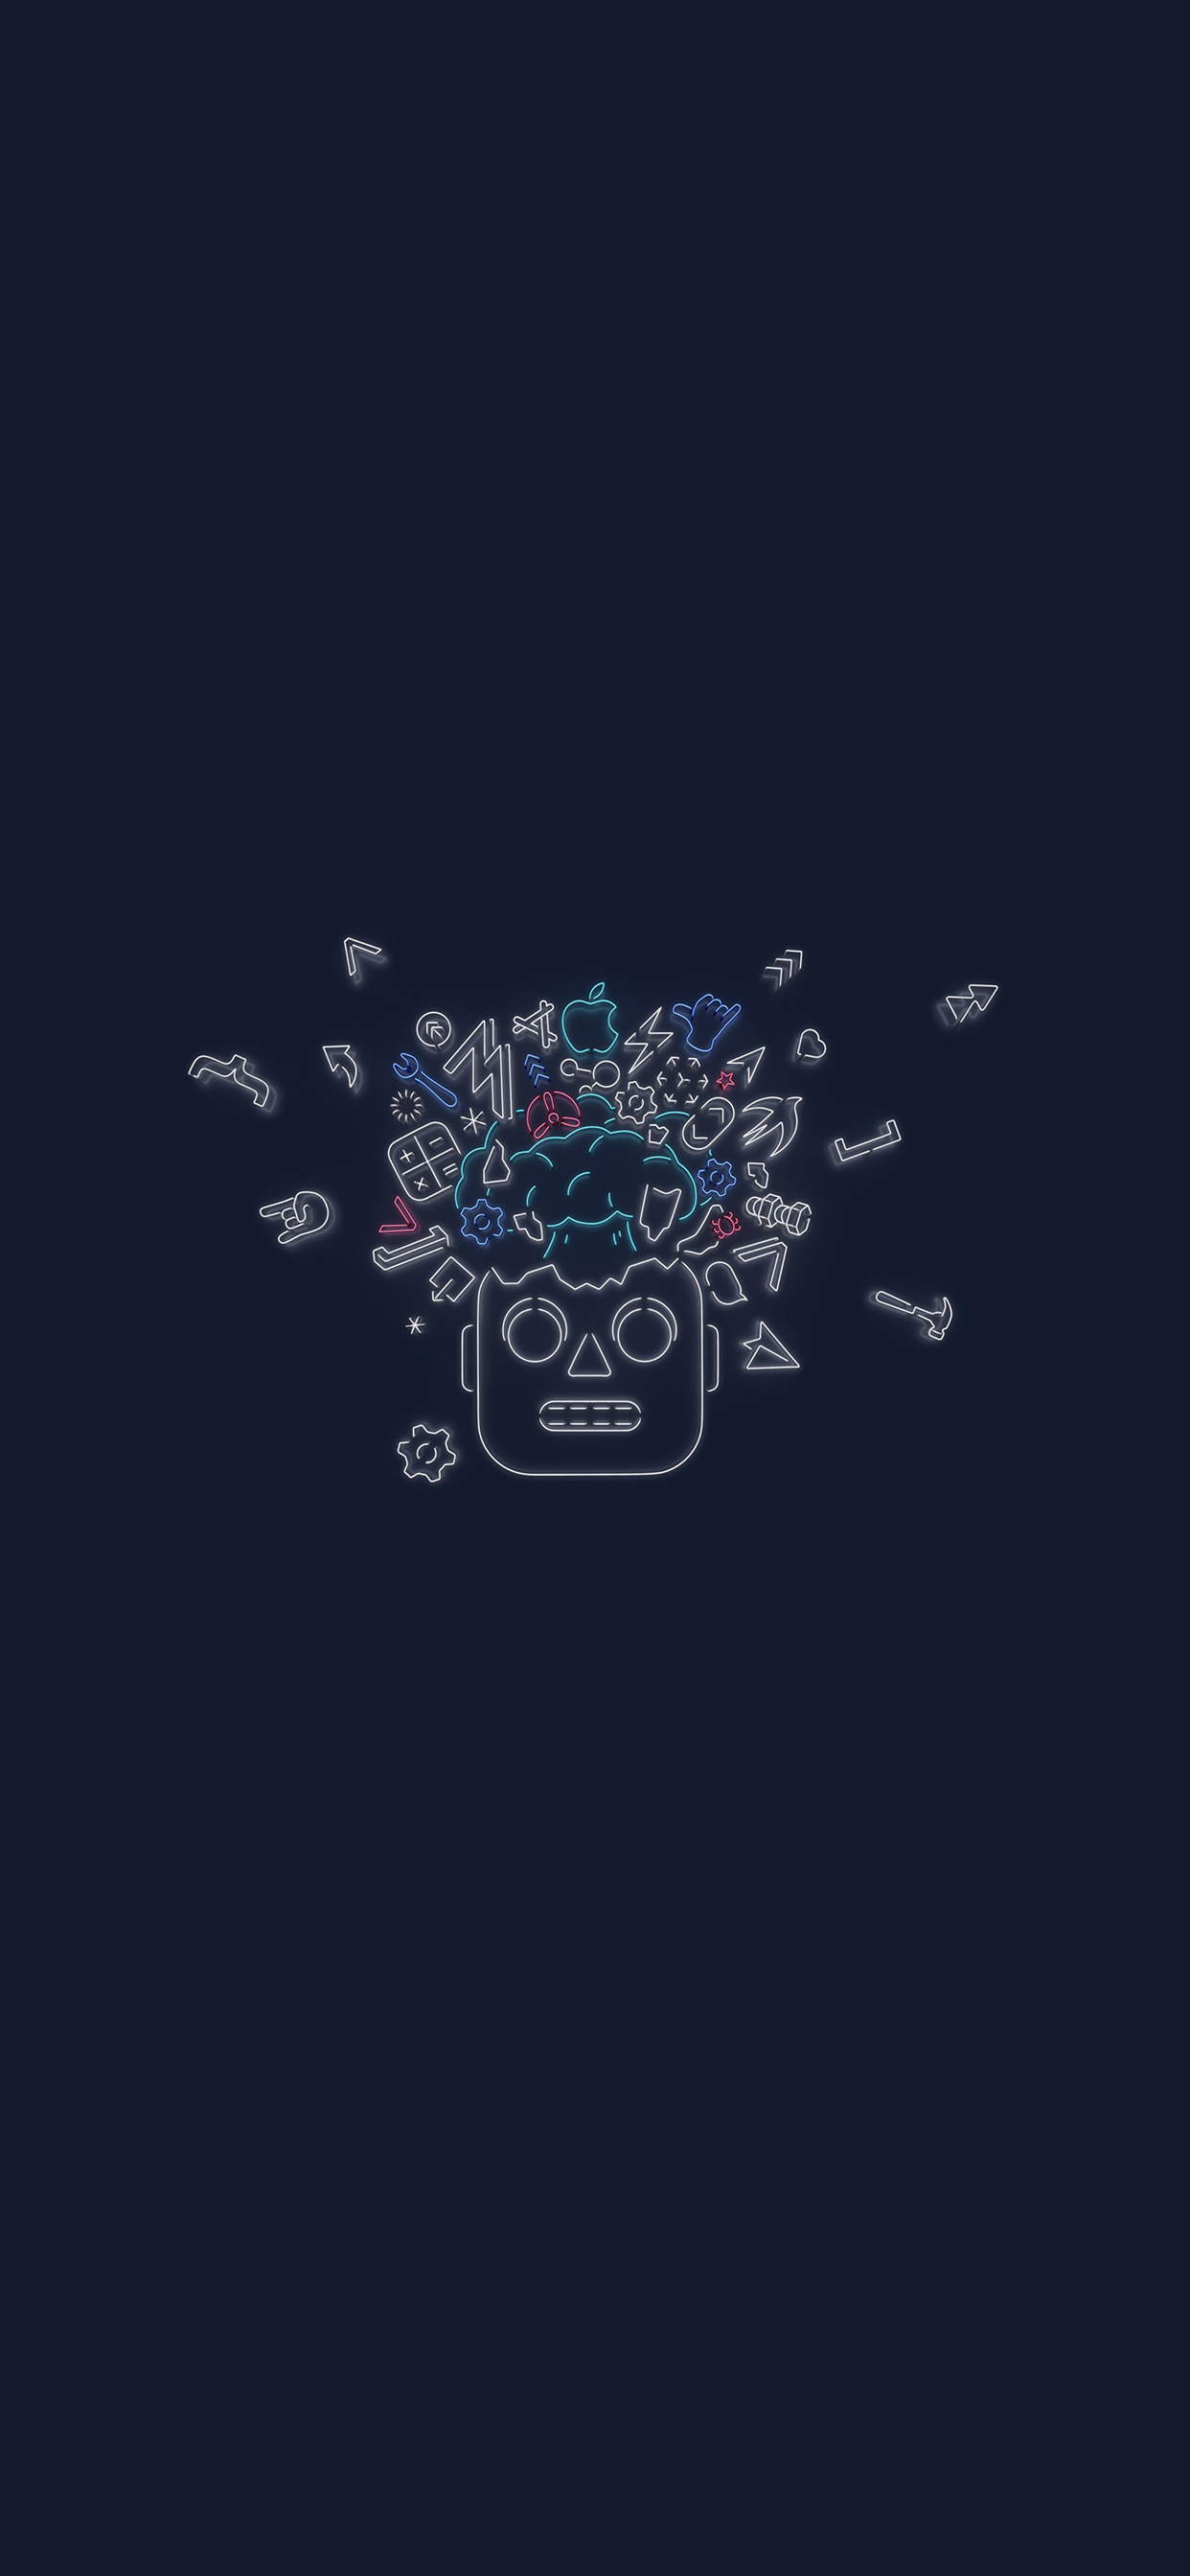 iPhone wallpaper Apple WWDC 2019 robot Apple WWDC 2019